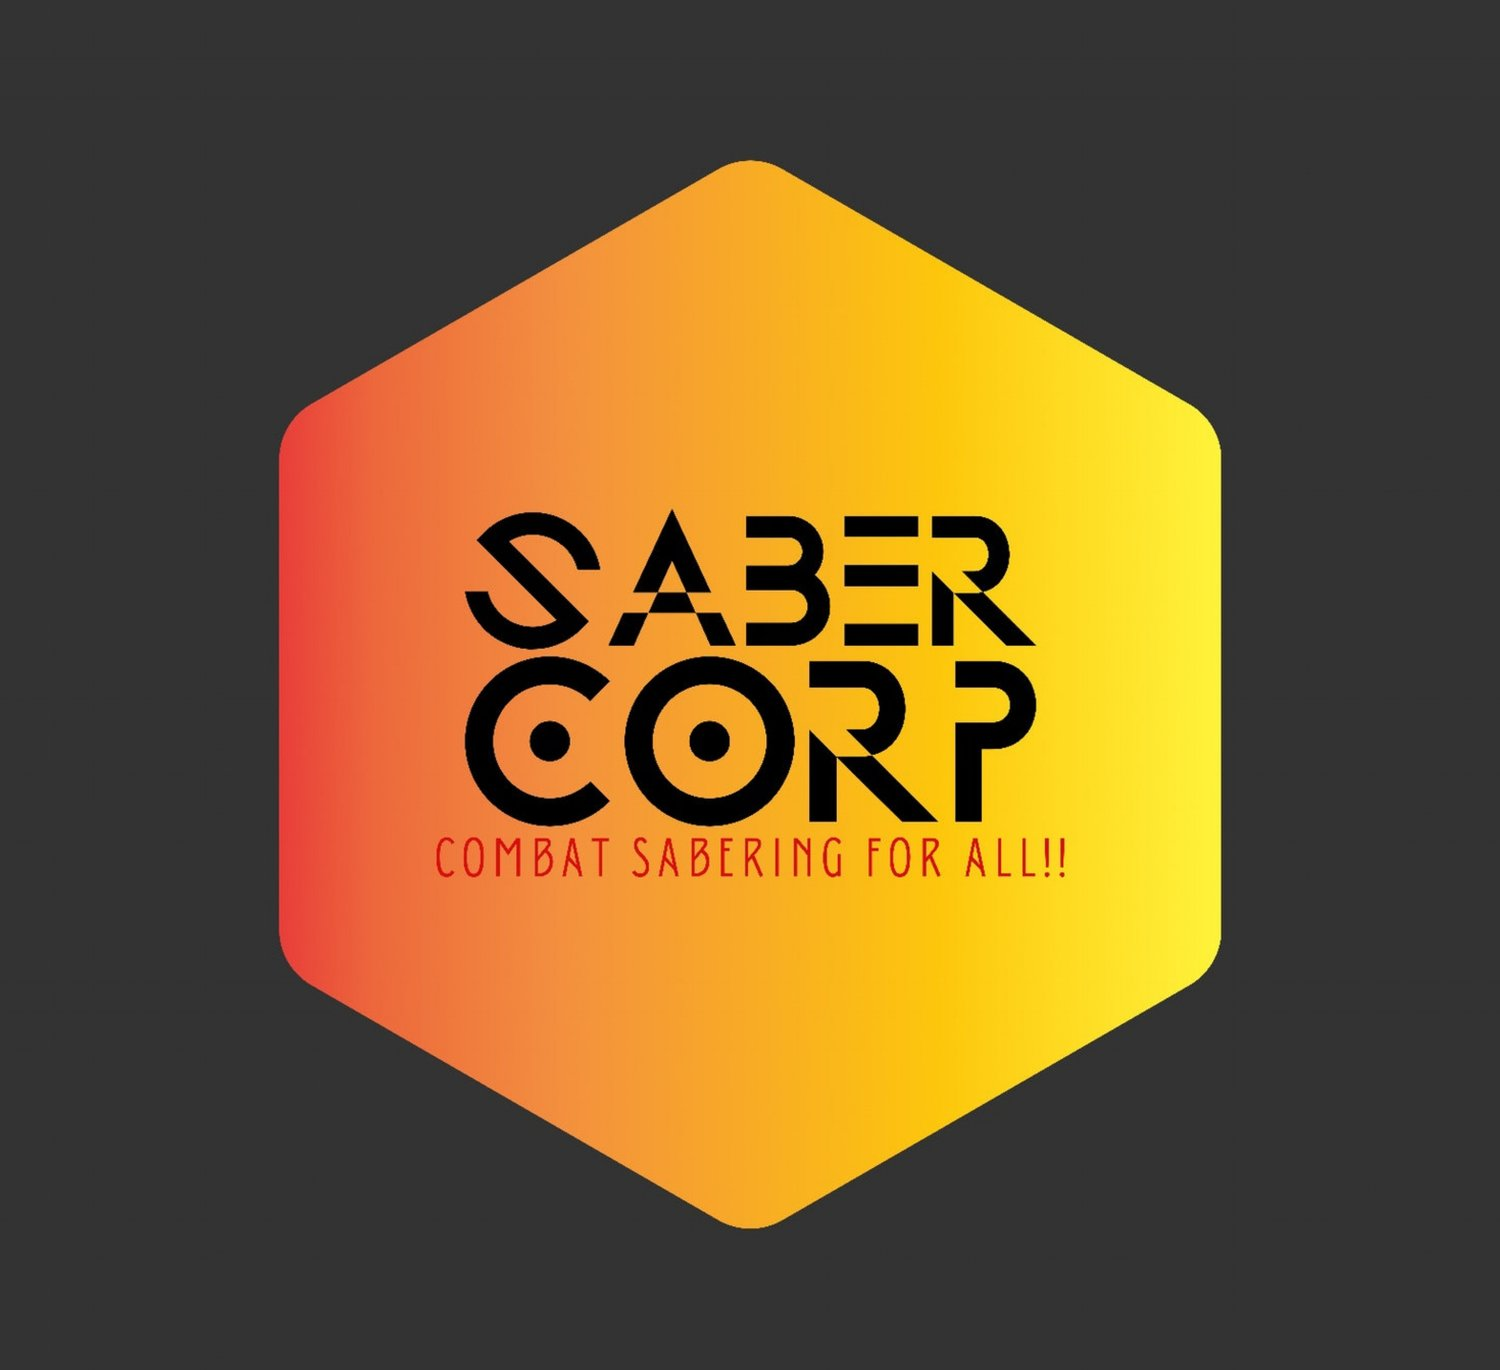 Saber Corp, Combat Sabering for ALL!!